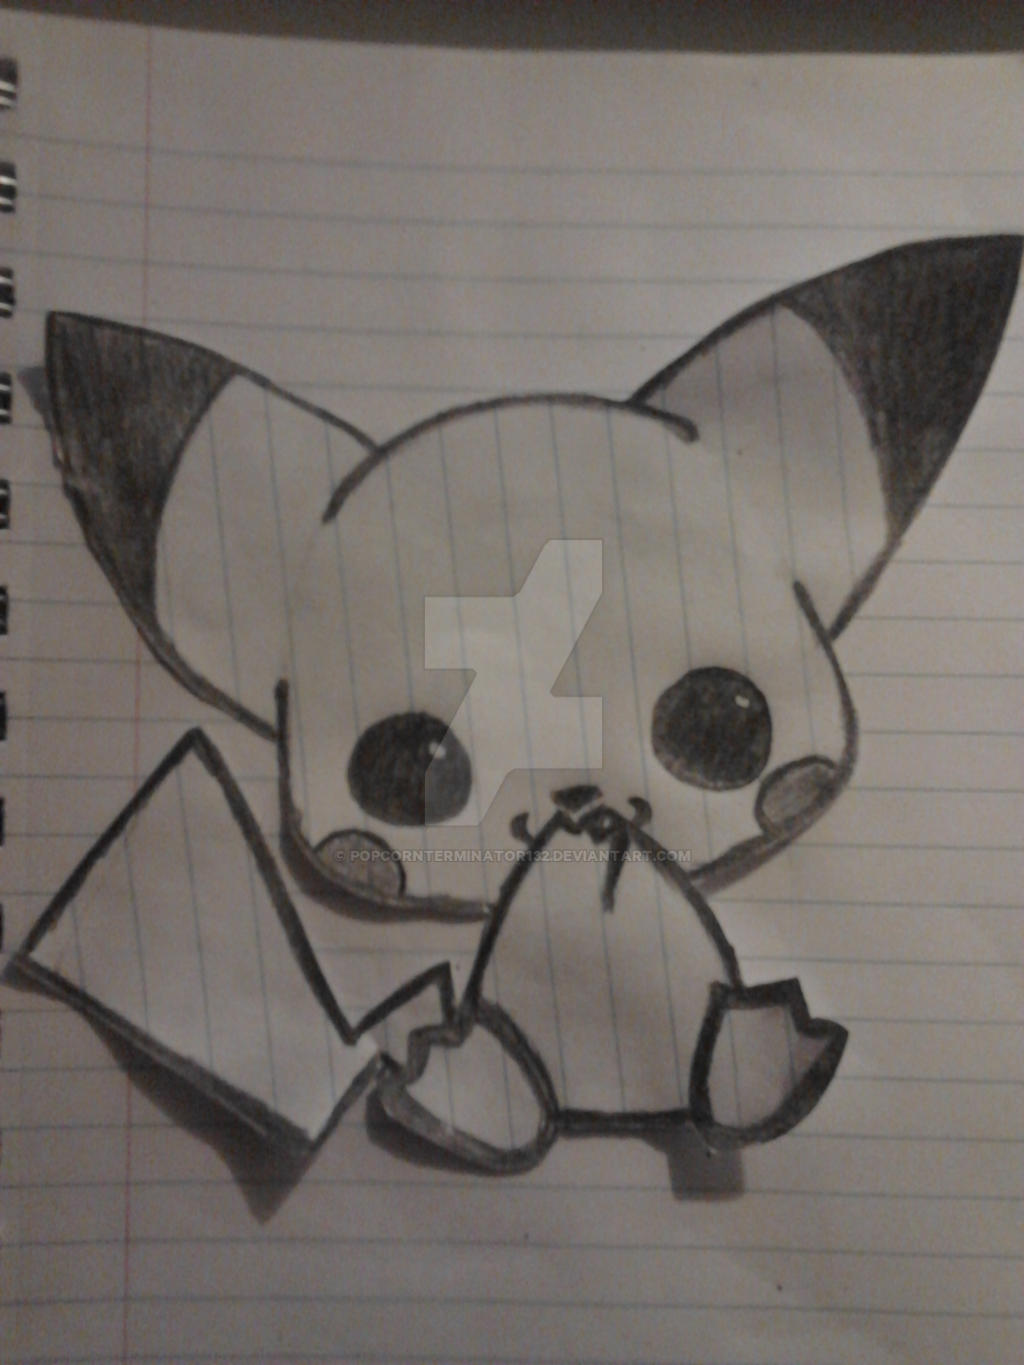 Chibi Pikachu :3 by Joseanimates on DeviantArt